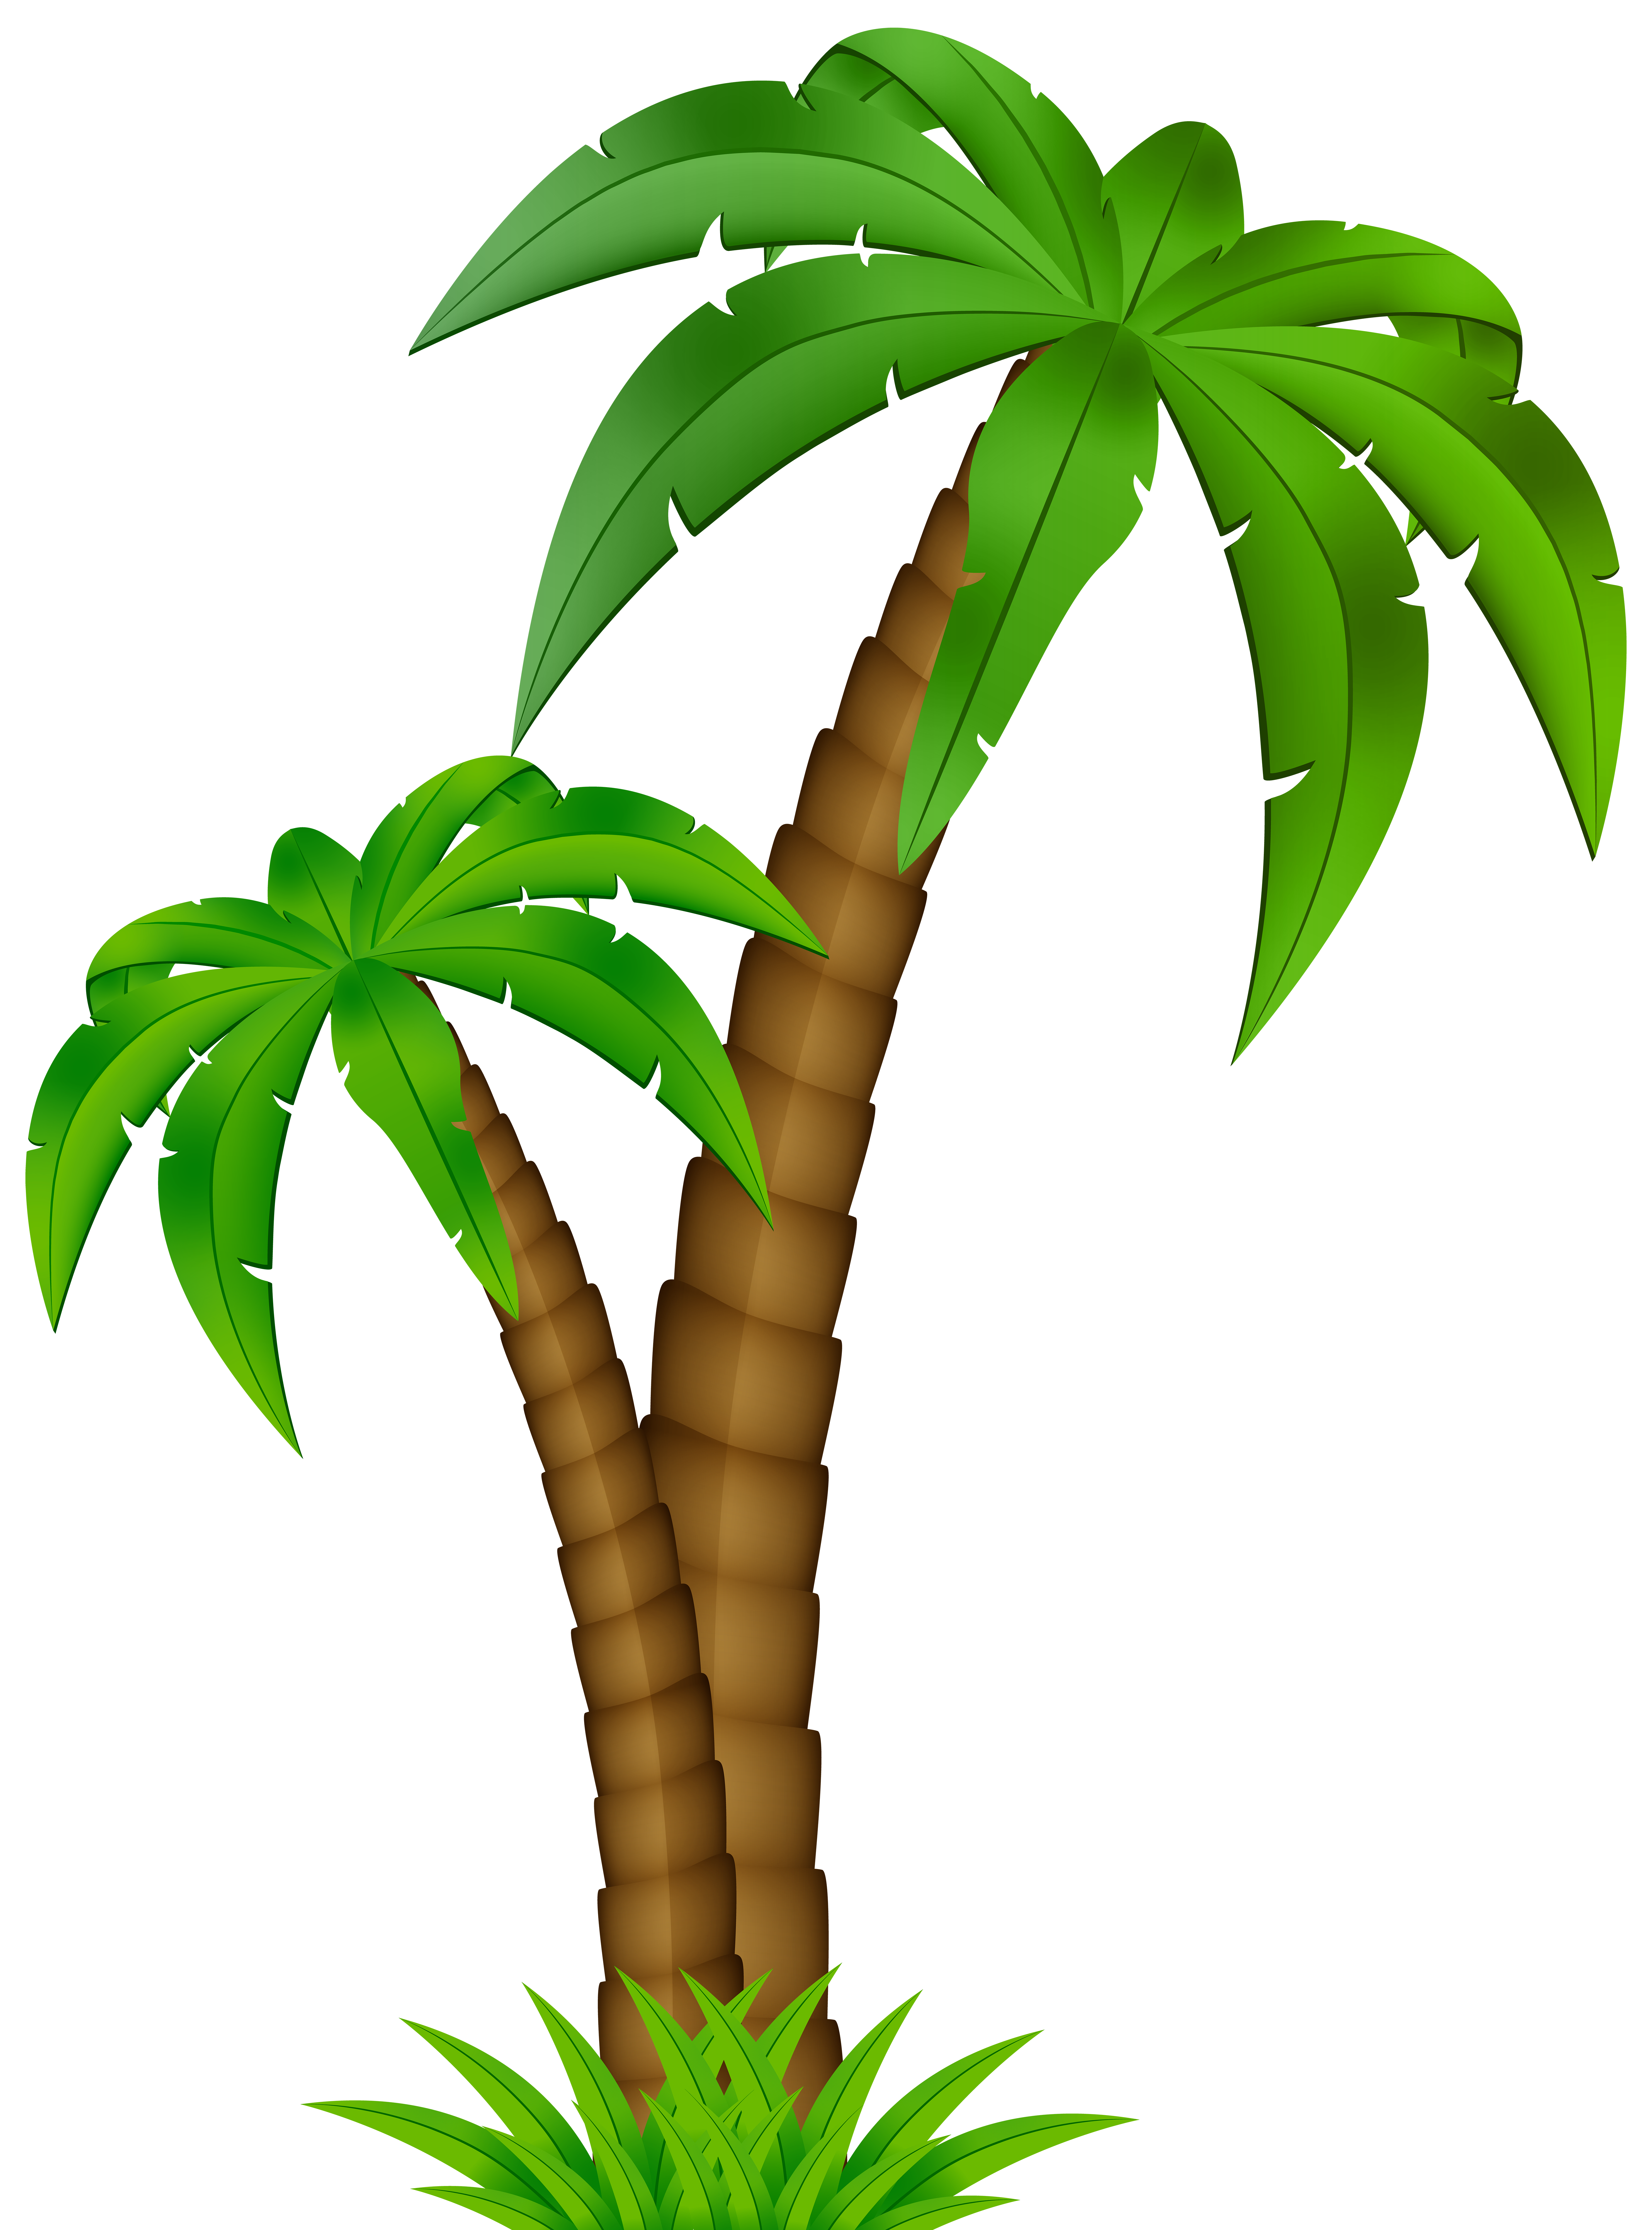 Palm tree cartoon png. Clip art image gallery